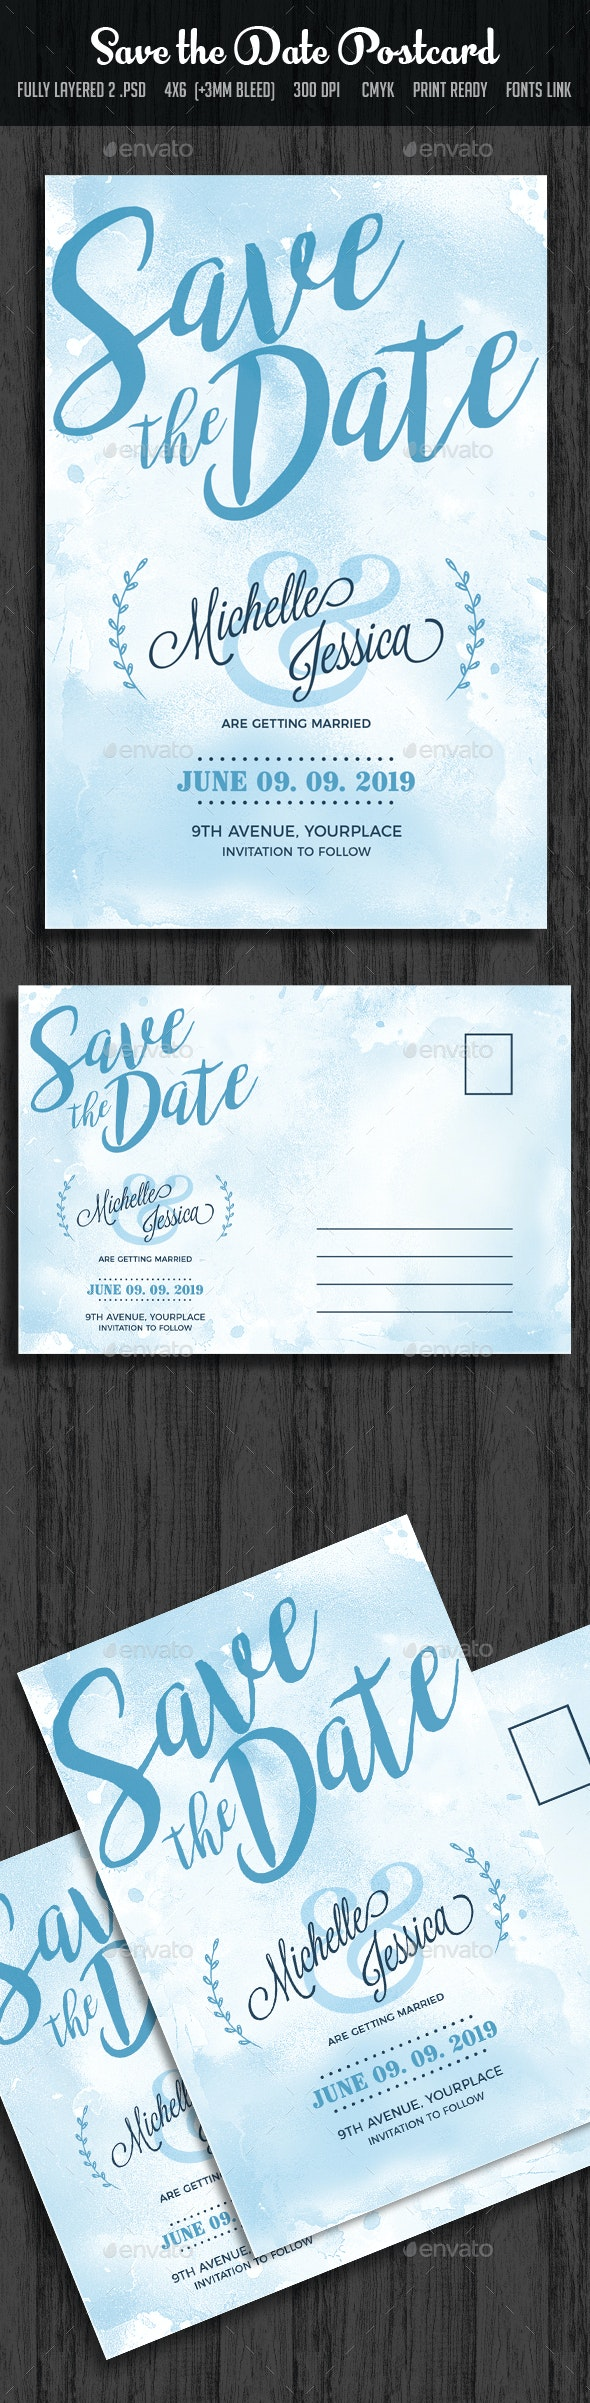 Save the Date Postcard - Cards & Invites Print Templates